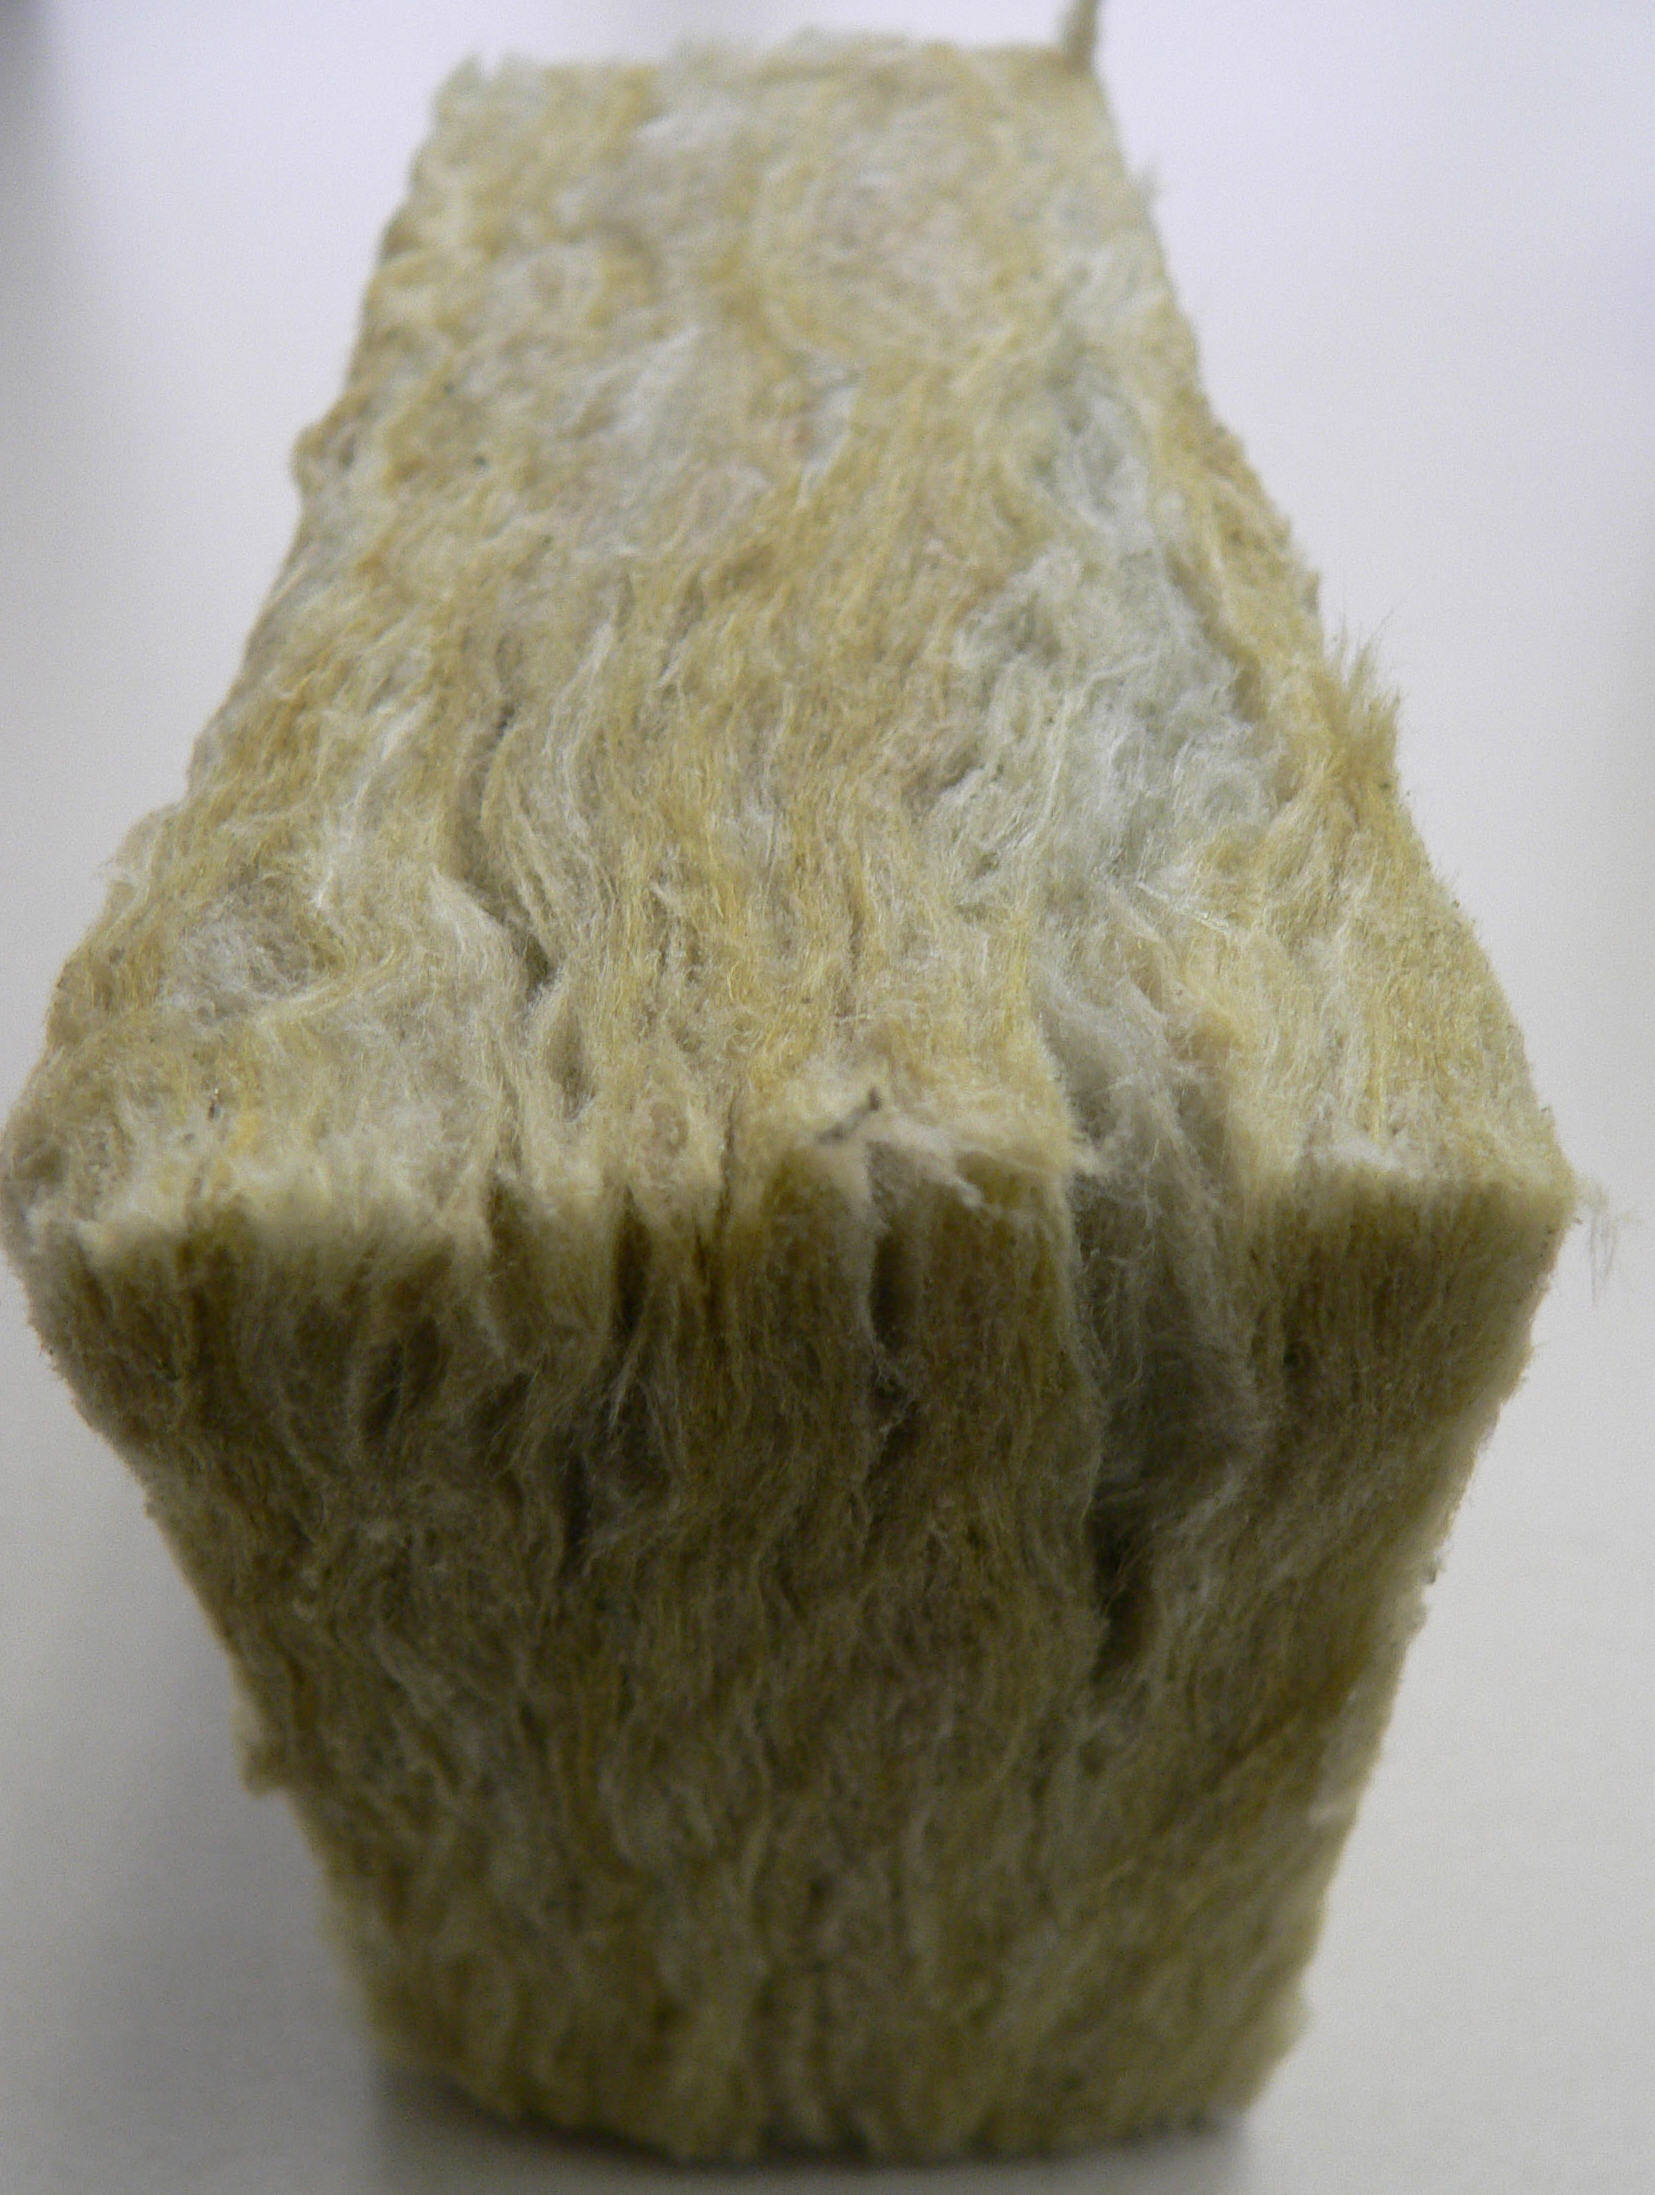 File rockwool 4lbs per ft3 wikimedia commons 3 mineral wool insulation